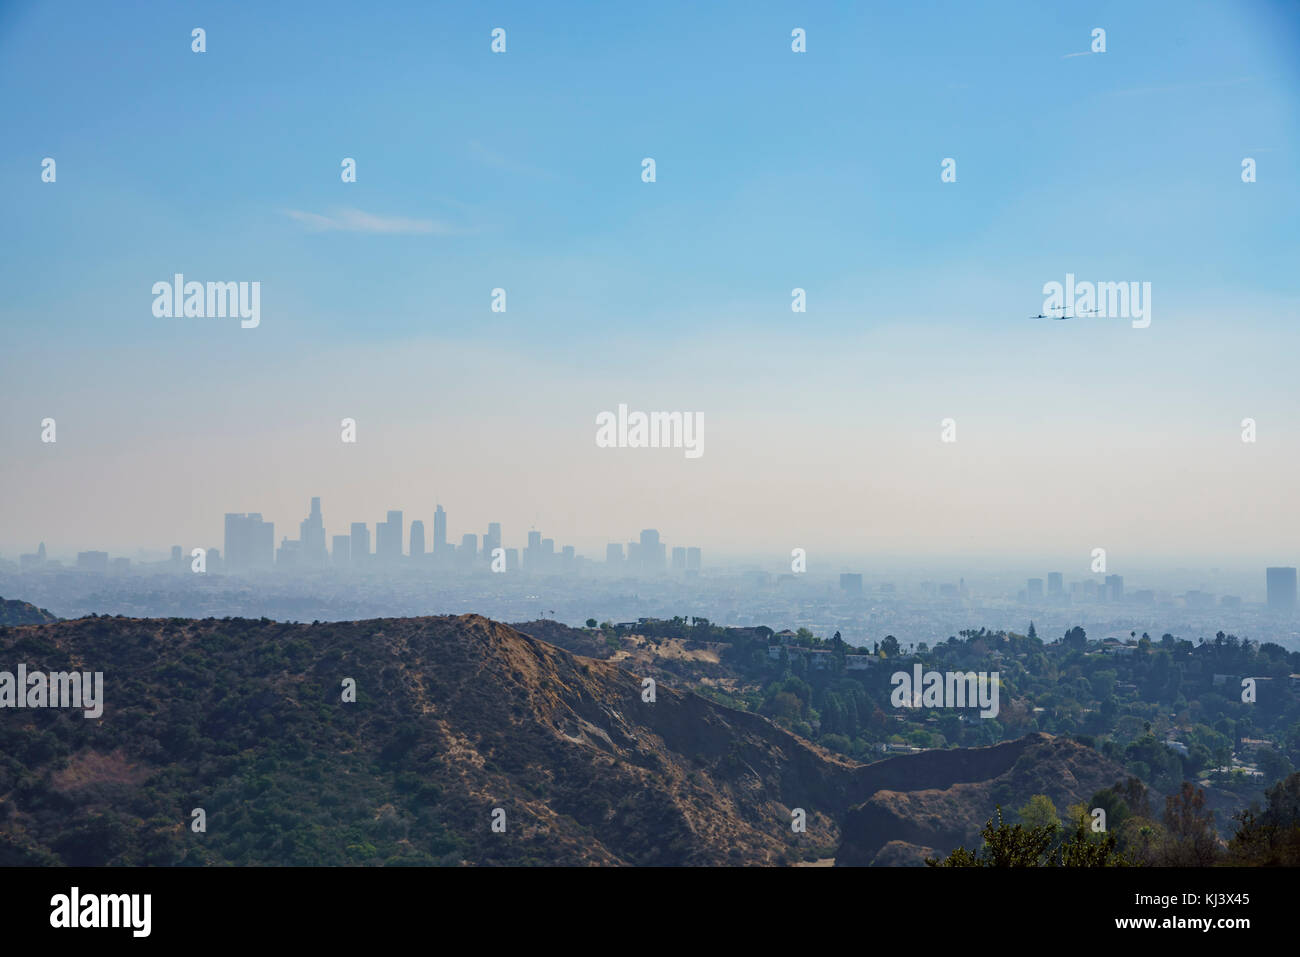 Veteran's Day US Army Performance with T-6 Texan, saw on Hollywood sign trail at Hollywood, California, United - Stock Image